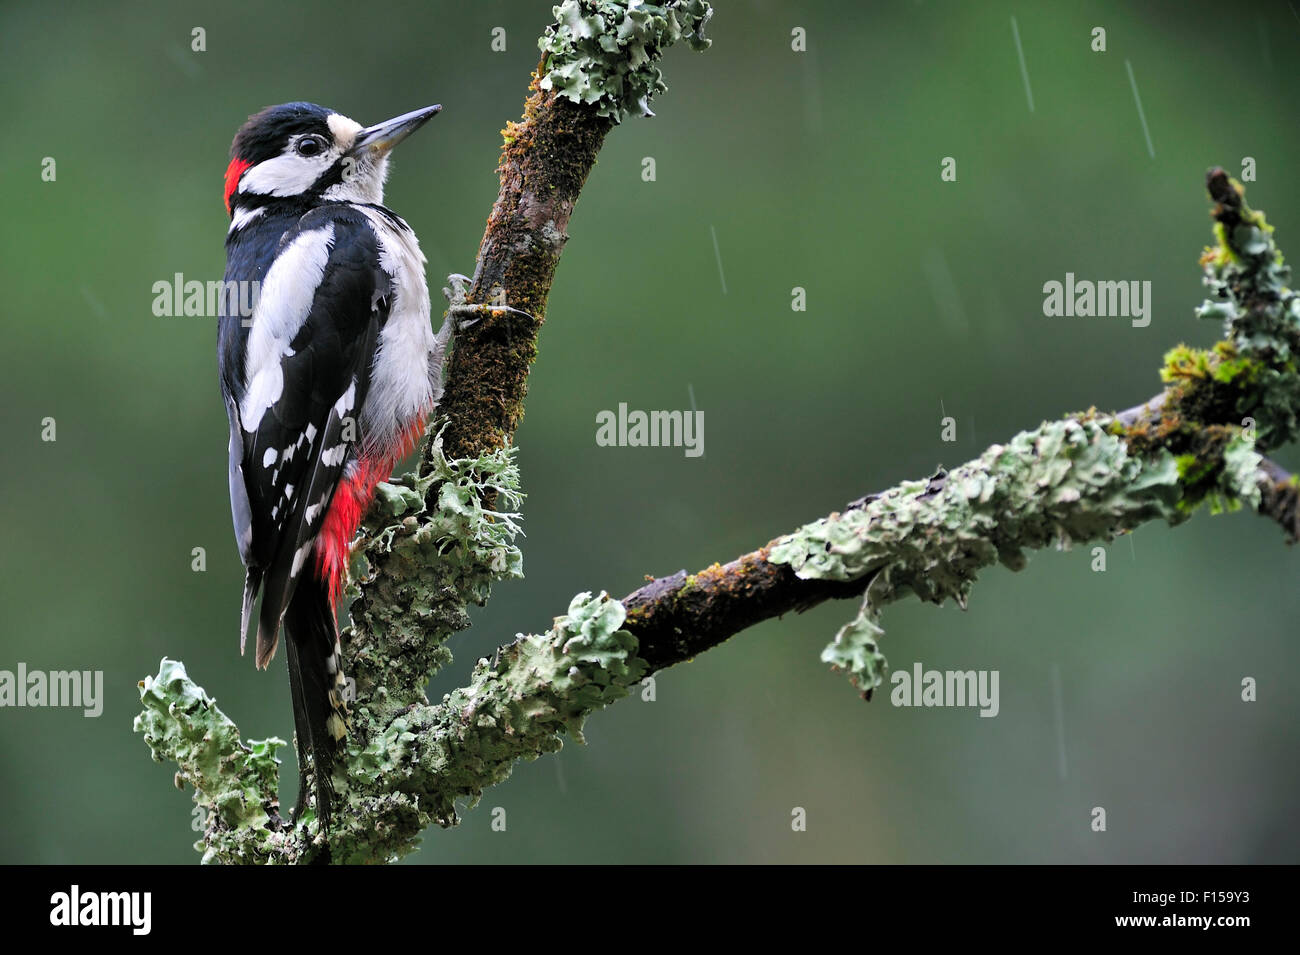 Great Spotted Woodpecker / Greater Spotted Woodpecker (Dendrocopos major) male perched on branch covered in lichen Stock Photo